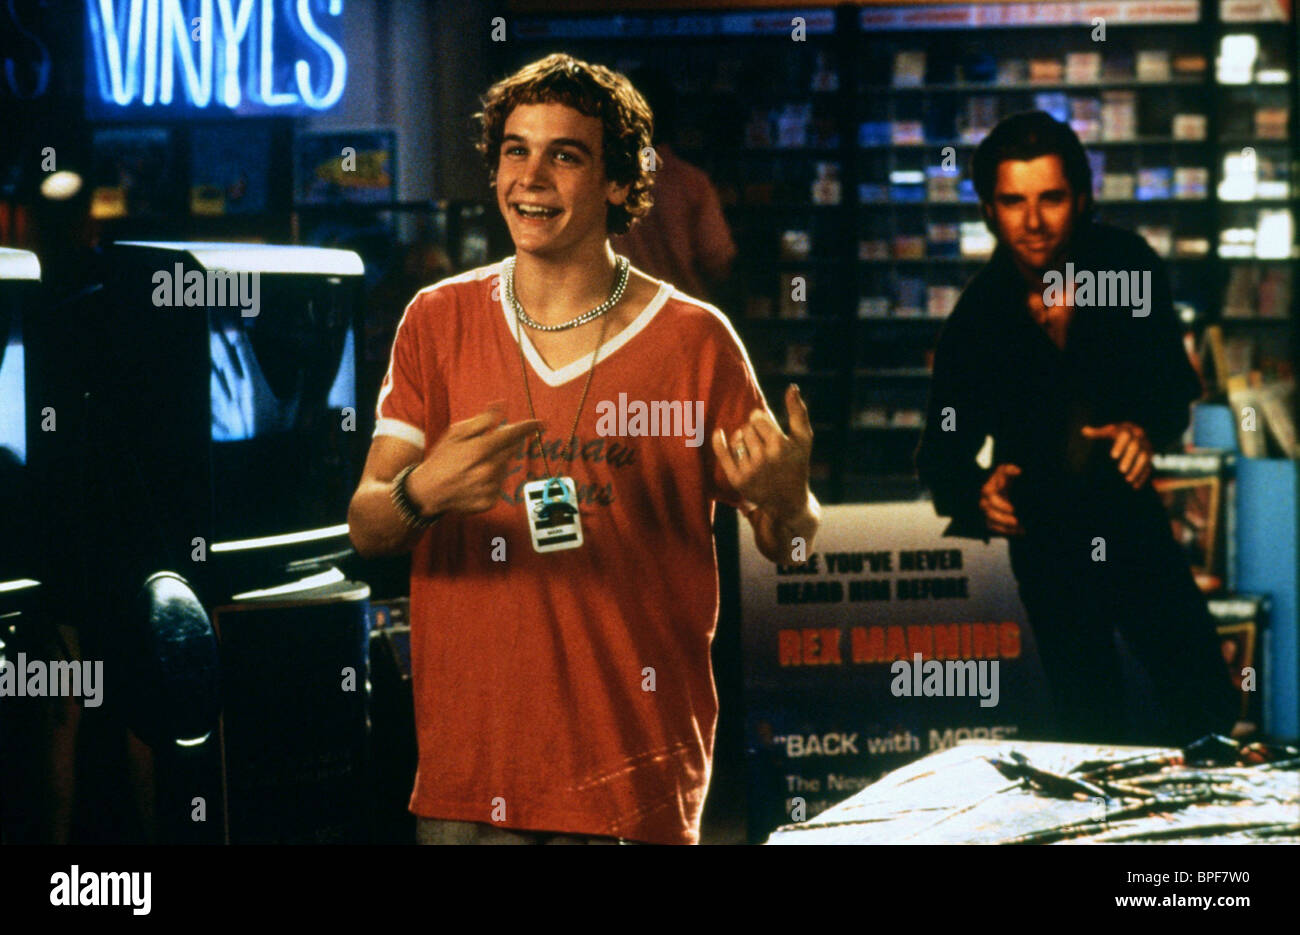 ETHAN EMBRY EMPIRE RECORDS (1995) - Stock Image